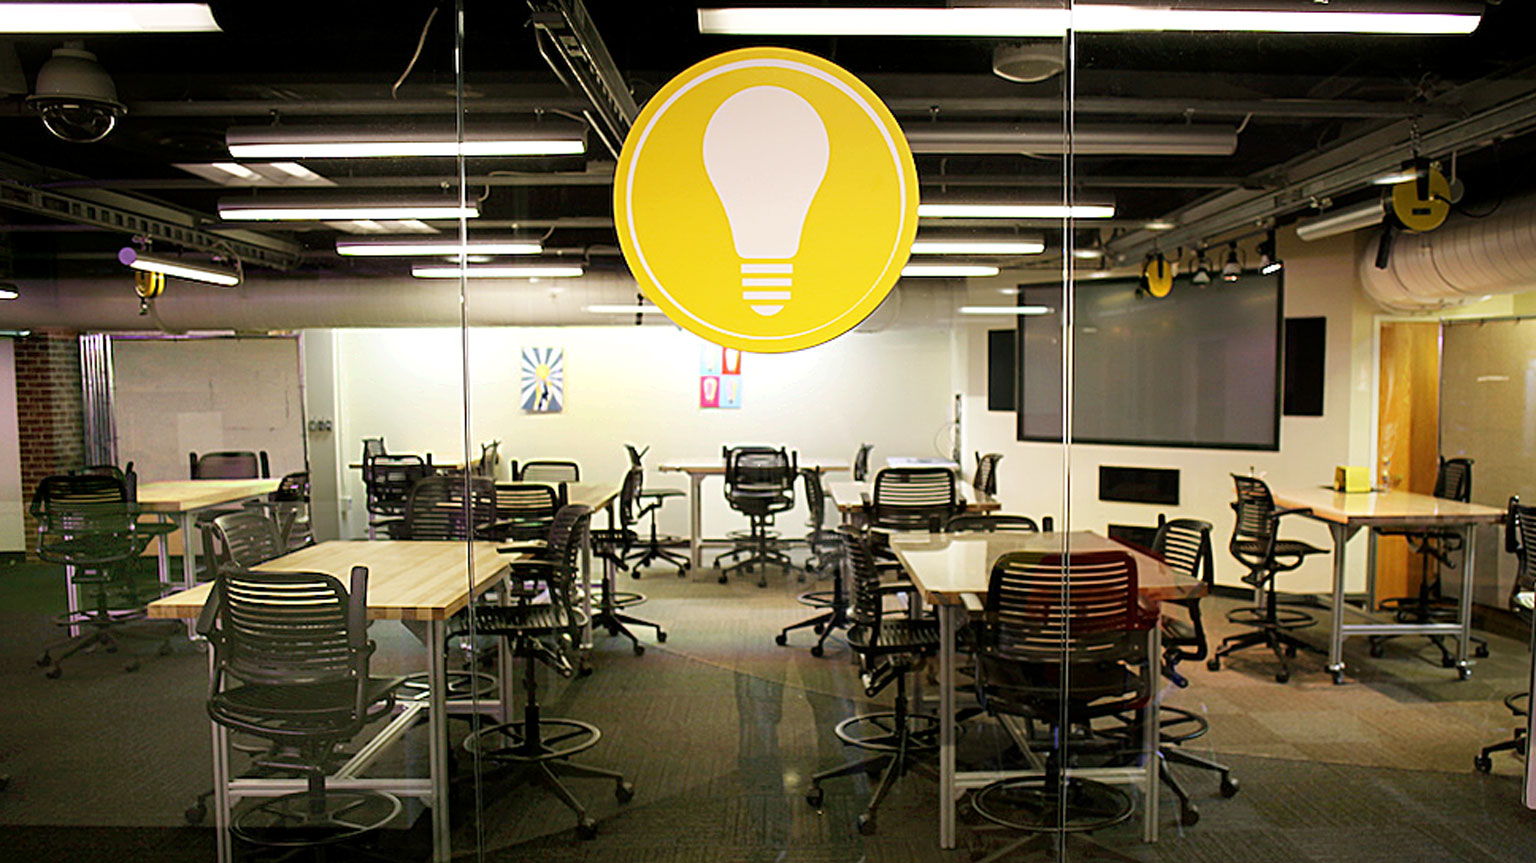 A view of a classroom full of adaptable rolling furniture and a large icon of a yellow lightbulb on the glass wall in center-screen.